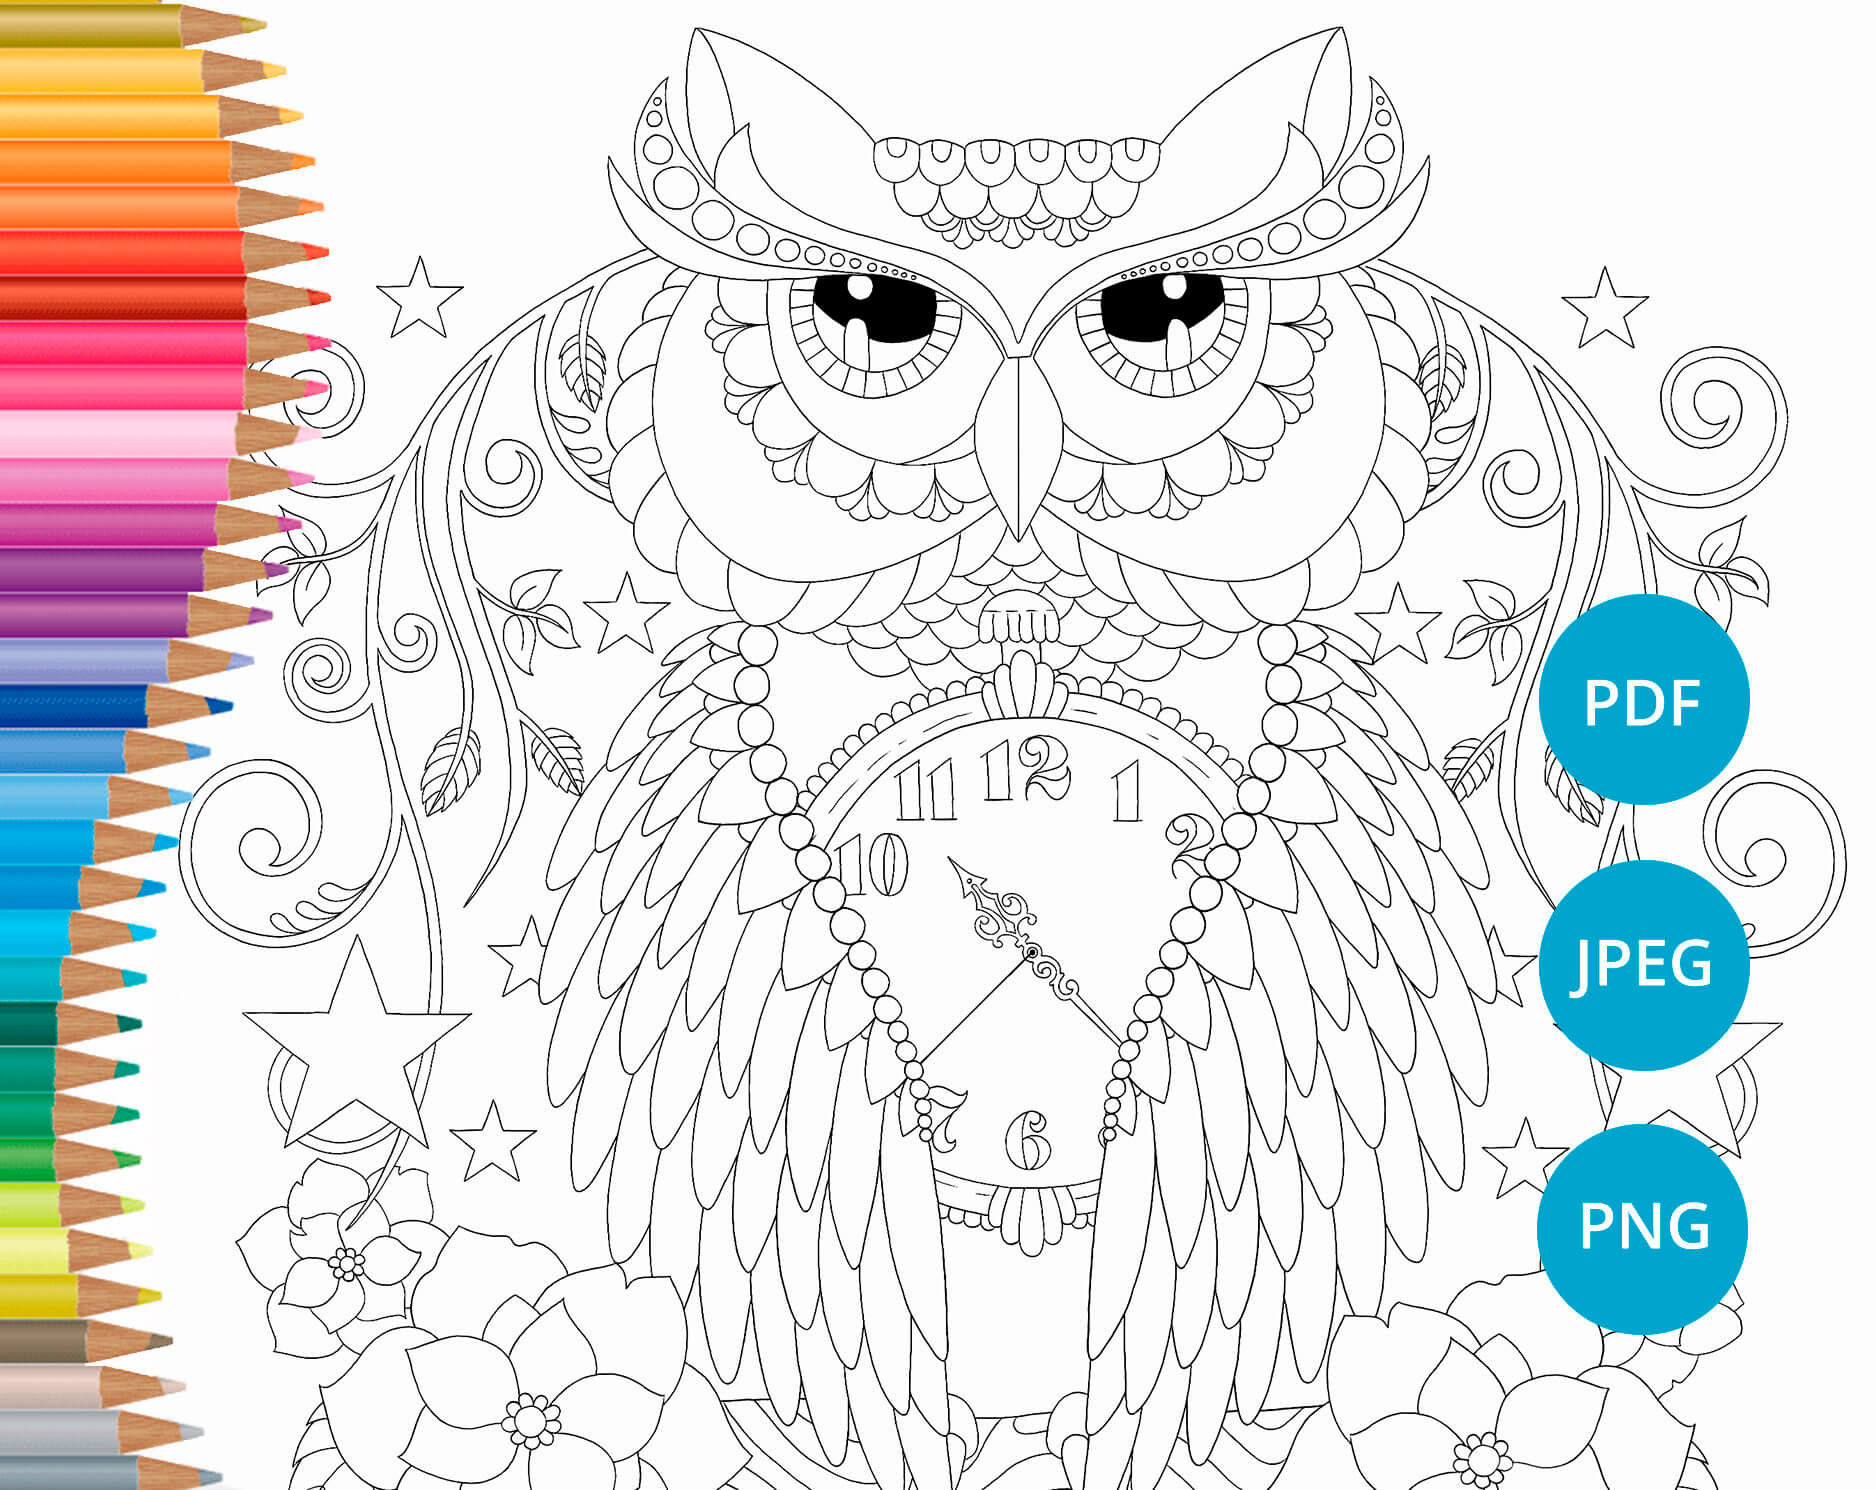 Ornate Owl , taken from   Doodles from The Den   colouring book (Available in my  Etsy store )